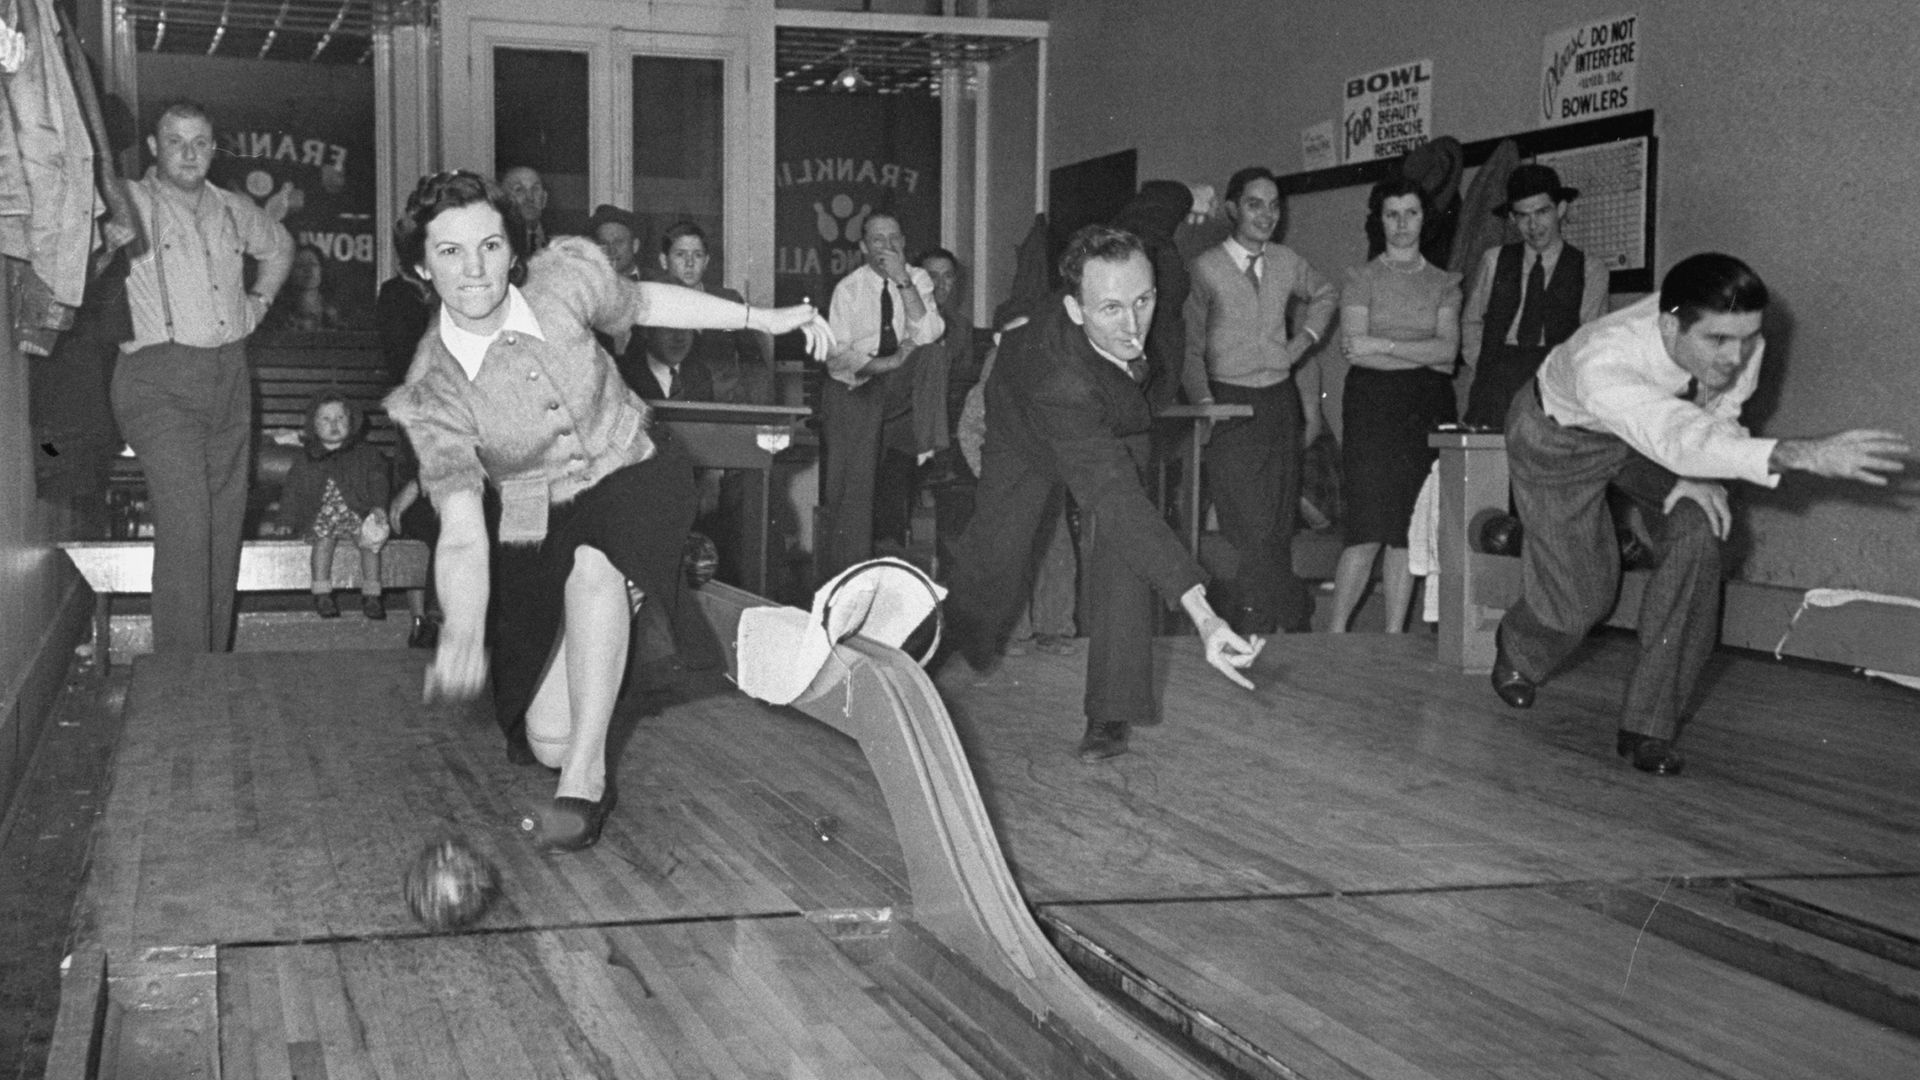 The future of bowling and belonging - Axios